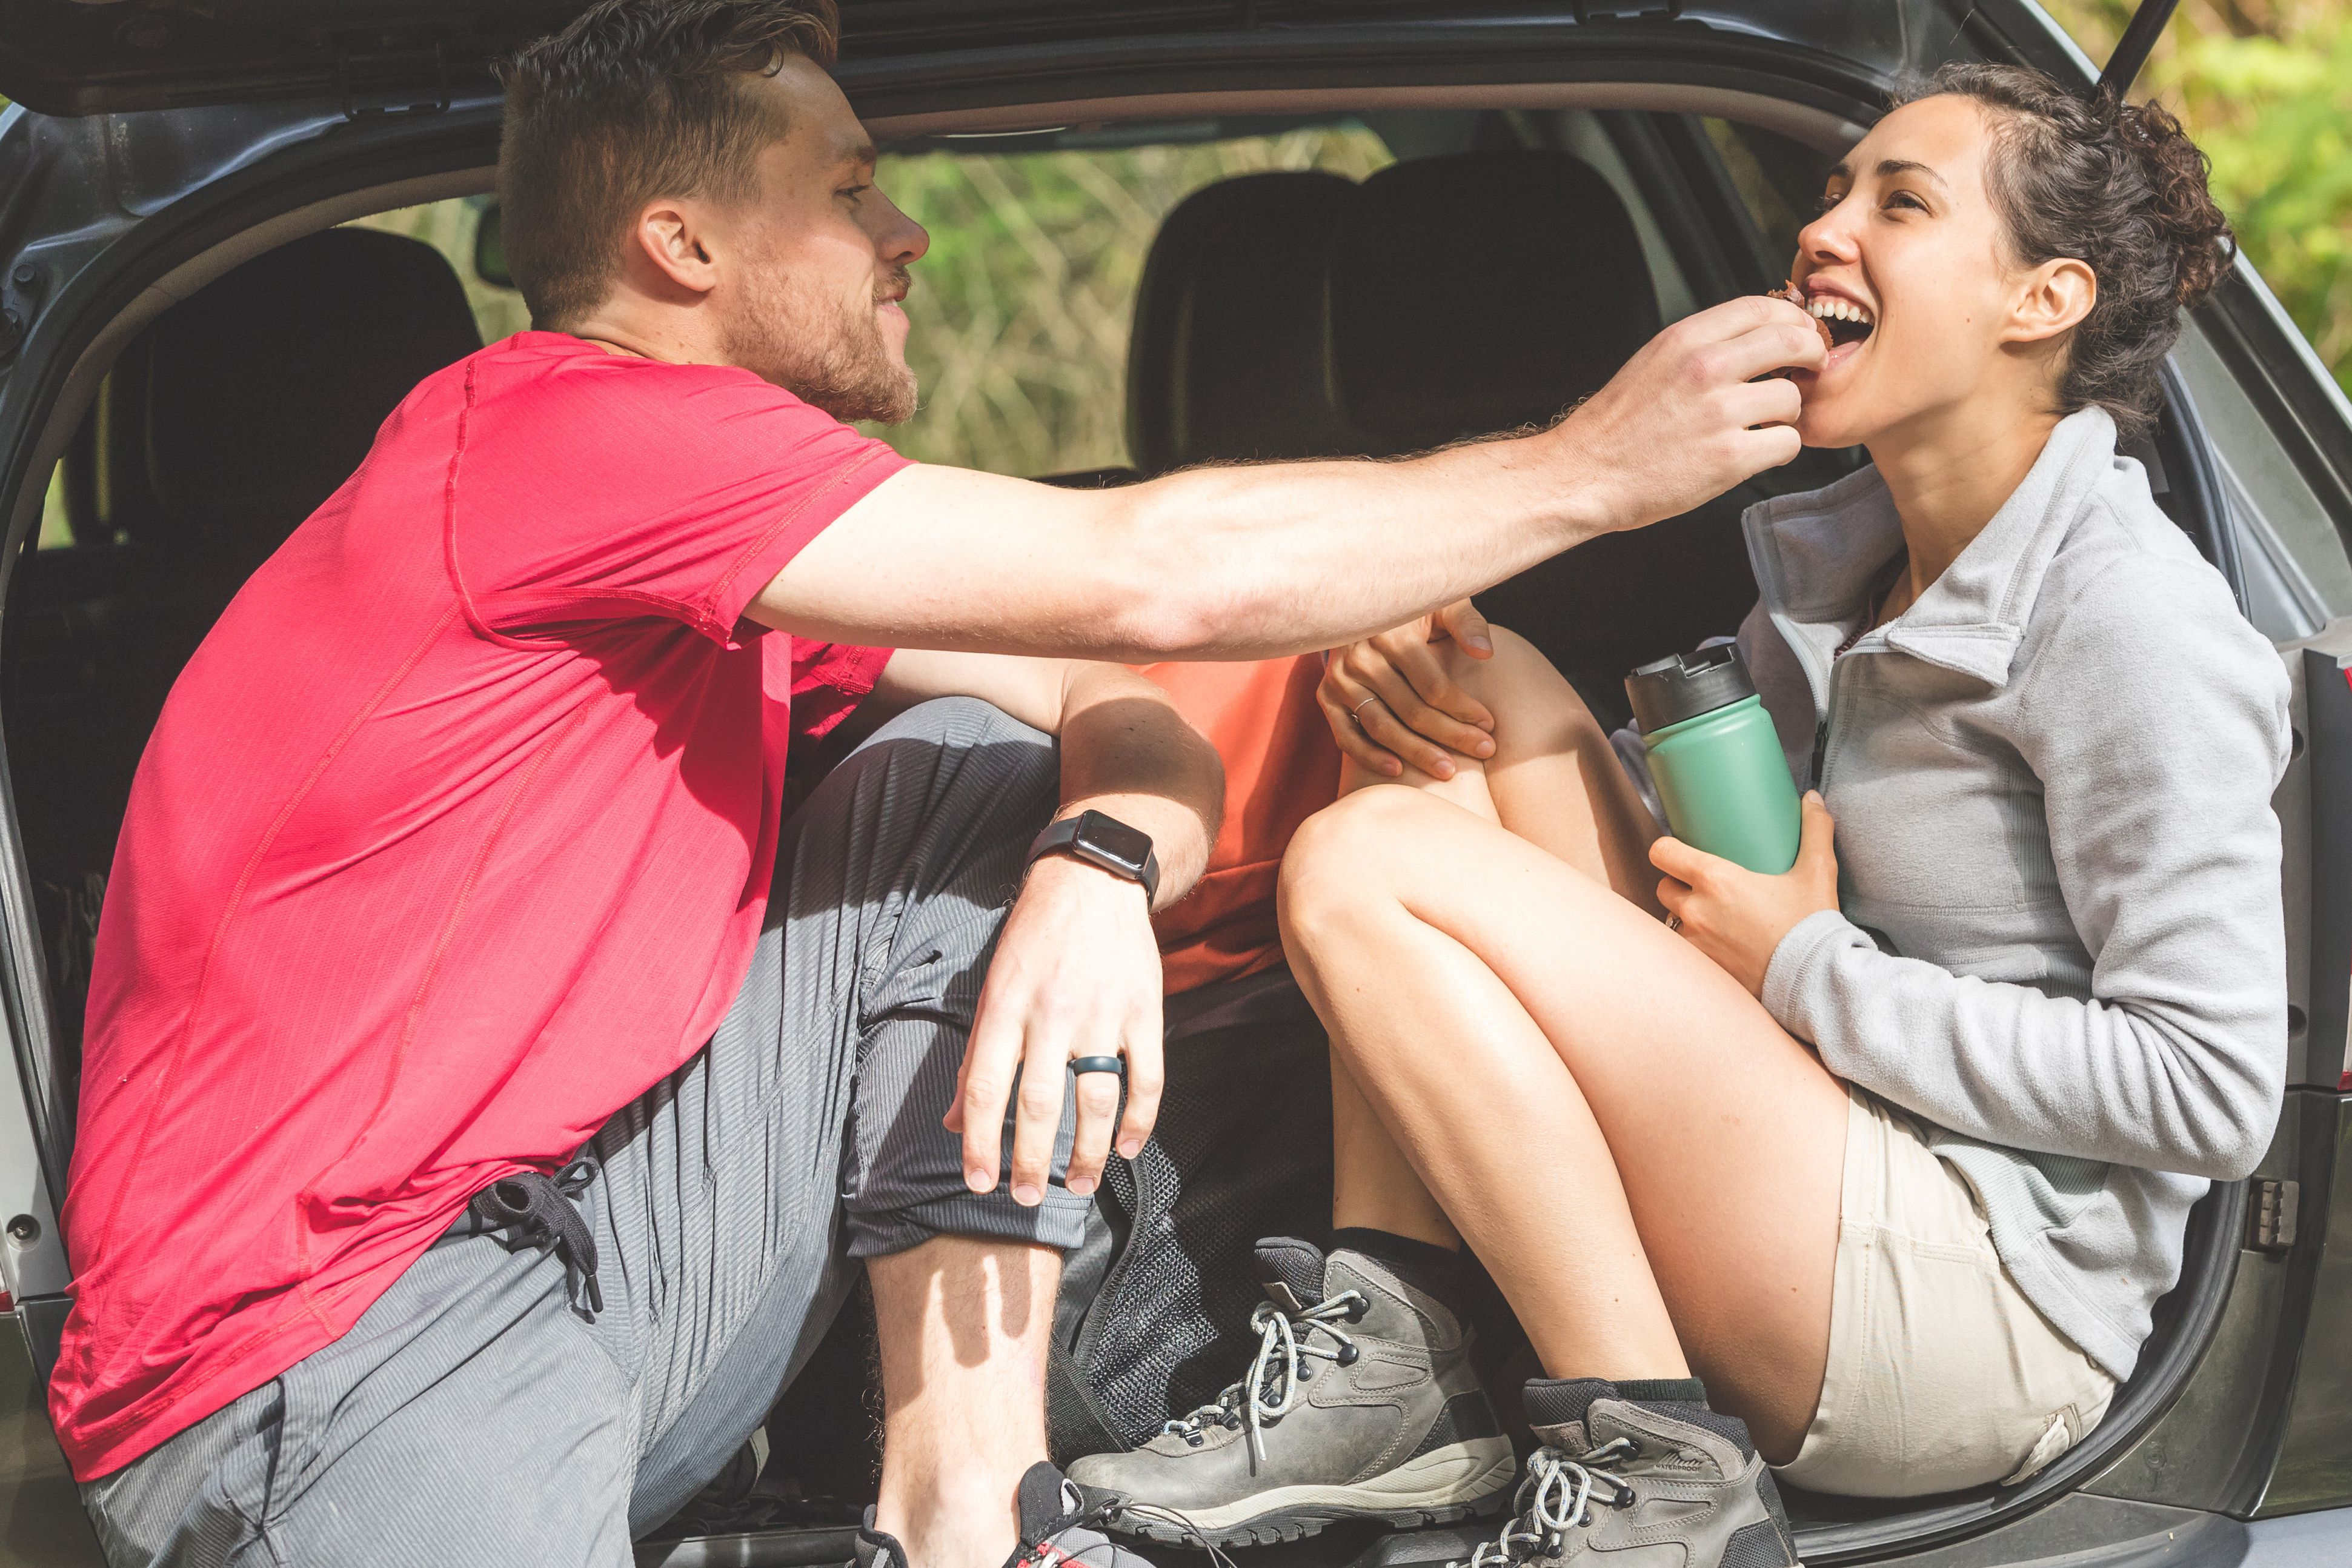 A young couple eats snacks in the back of their car after hiking